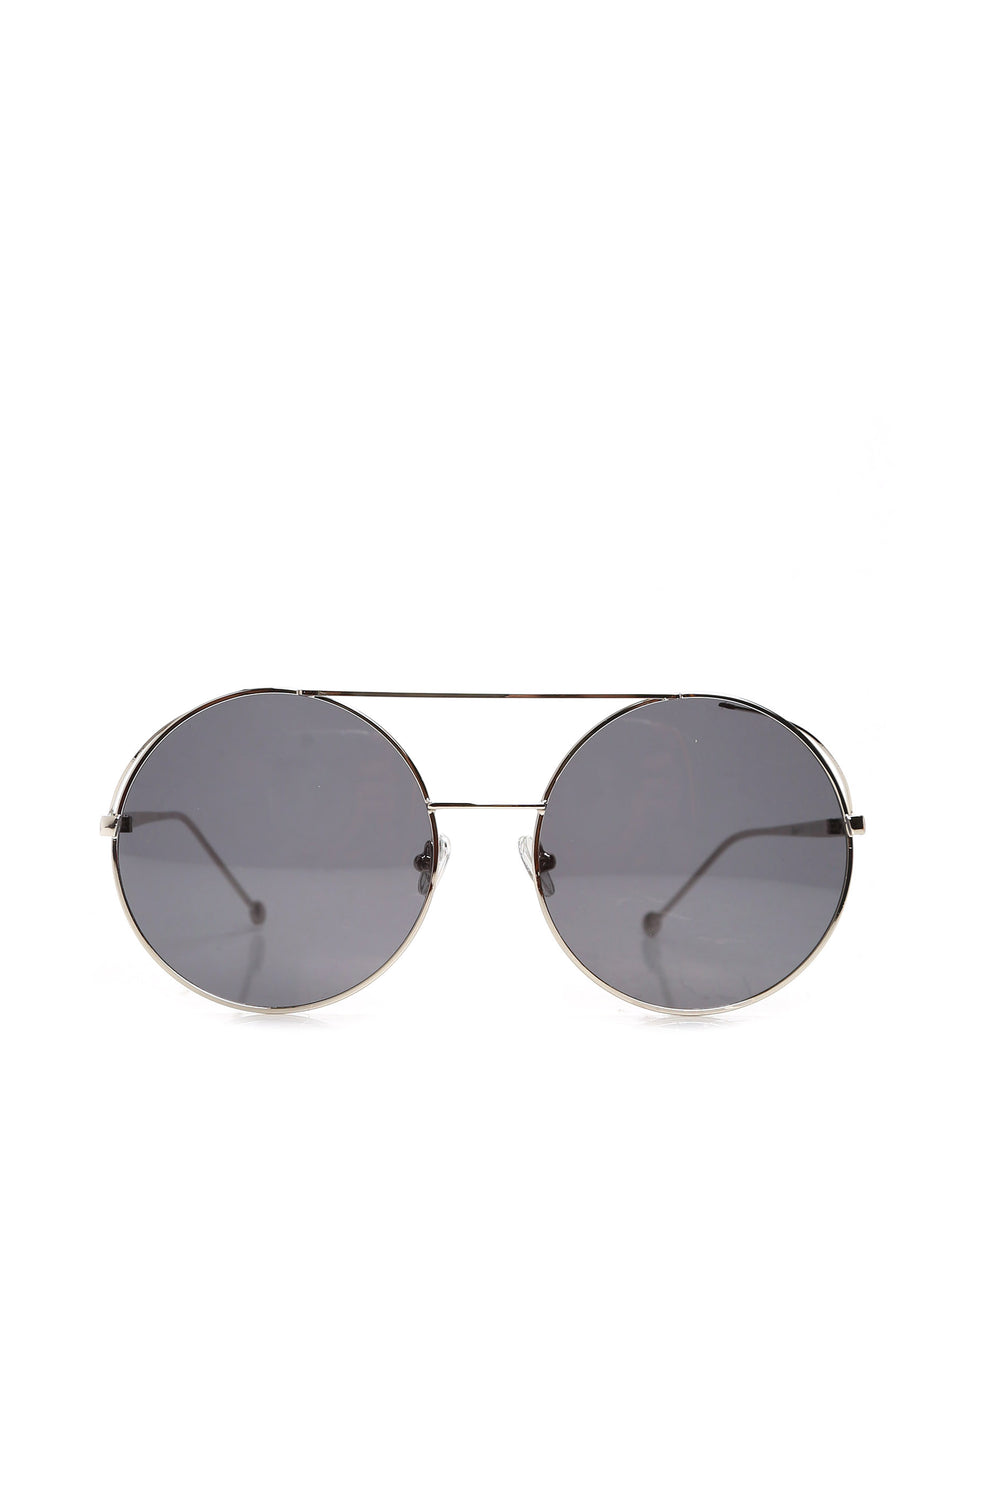 Don't Bumble Me Around Sunglasses - Black/Silver